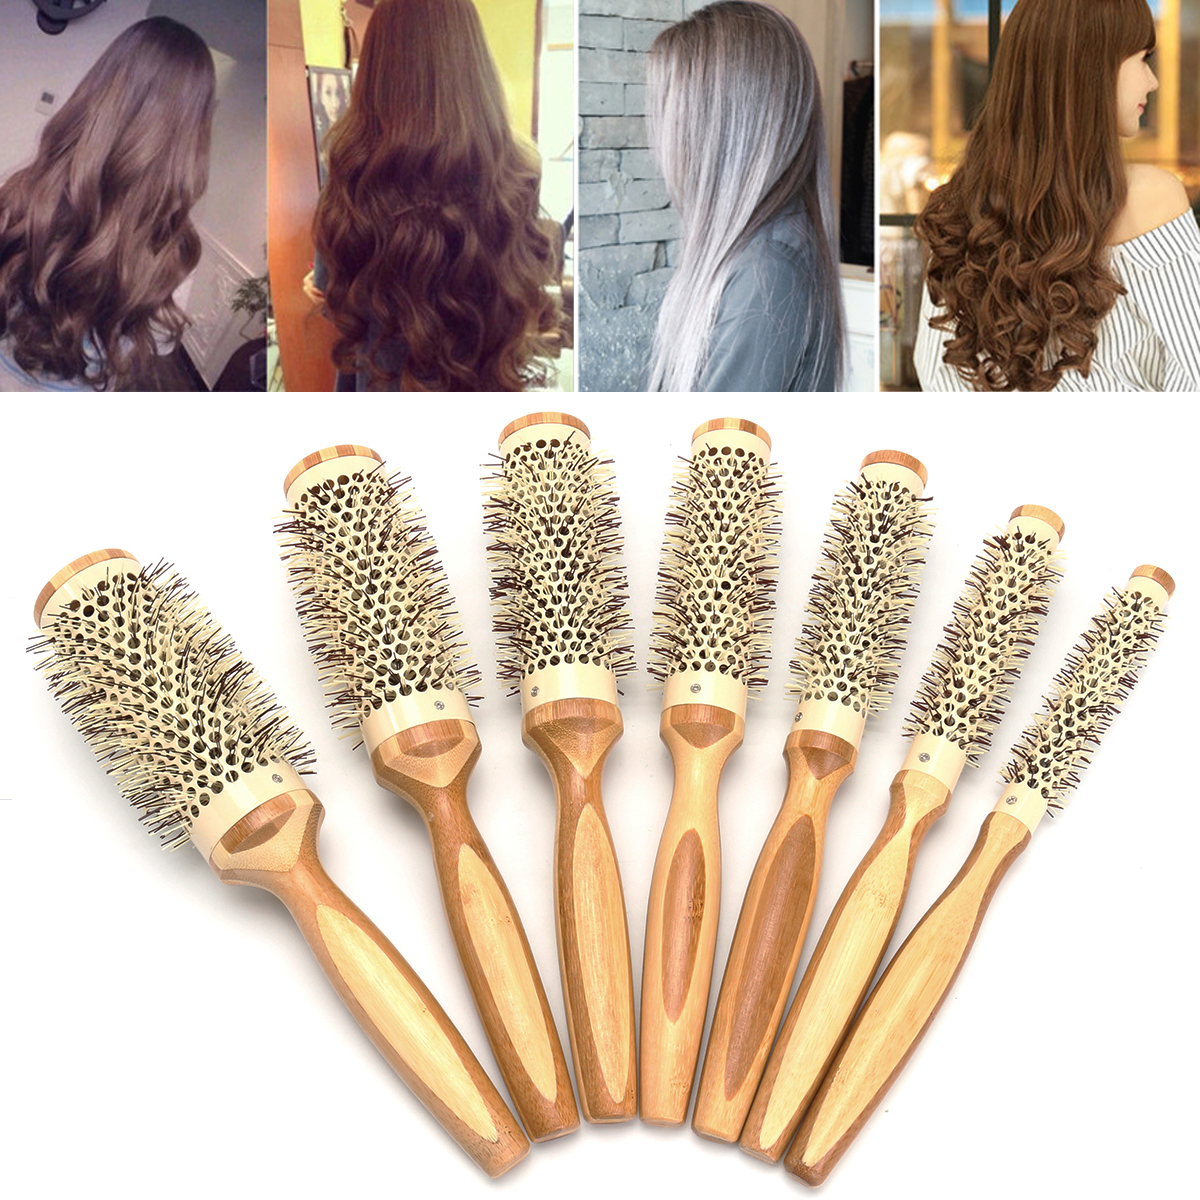 7 Pro Round Brush Curly Hair Roller Brush Natural Wood Hairbrush Comb Salon Tools